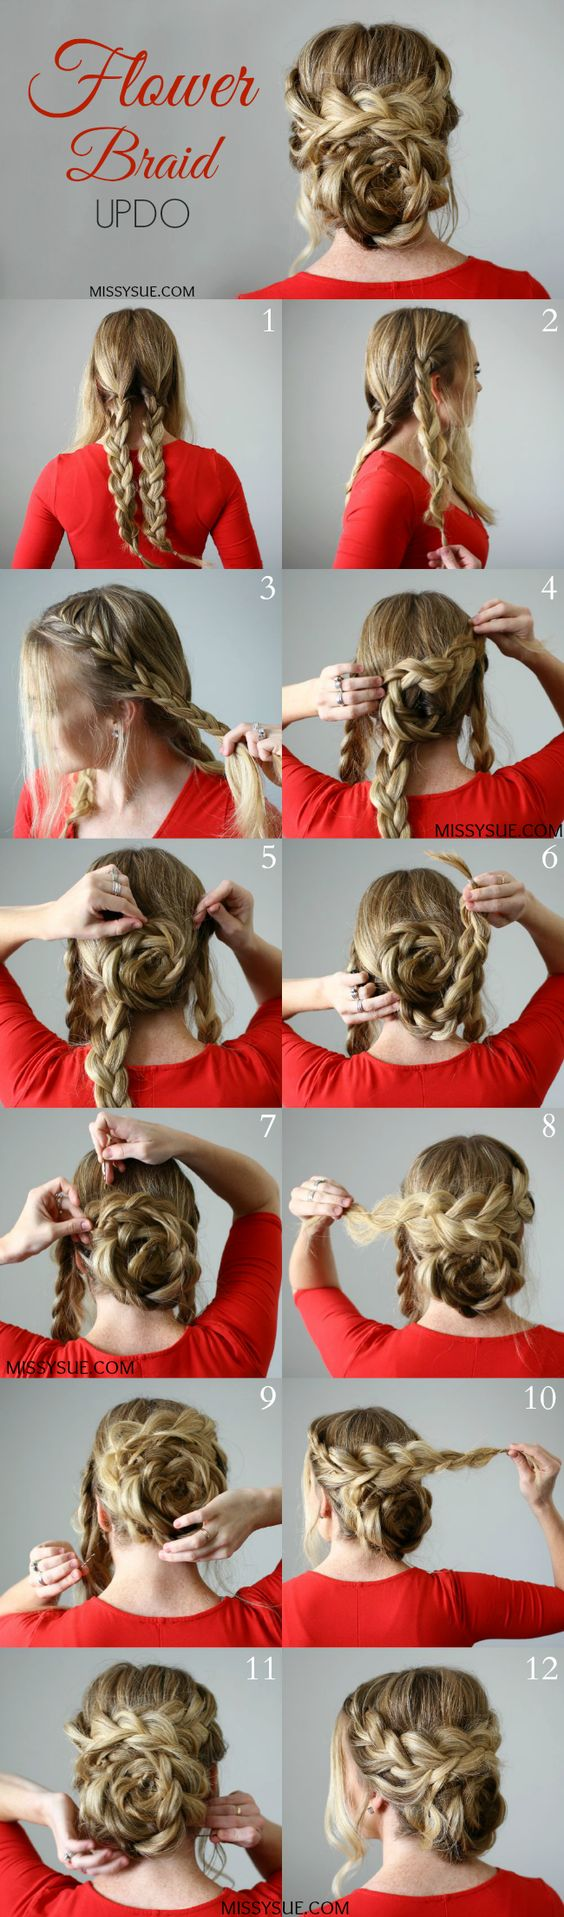 Flower Braid Updo: